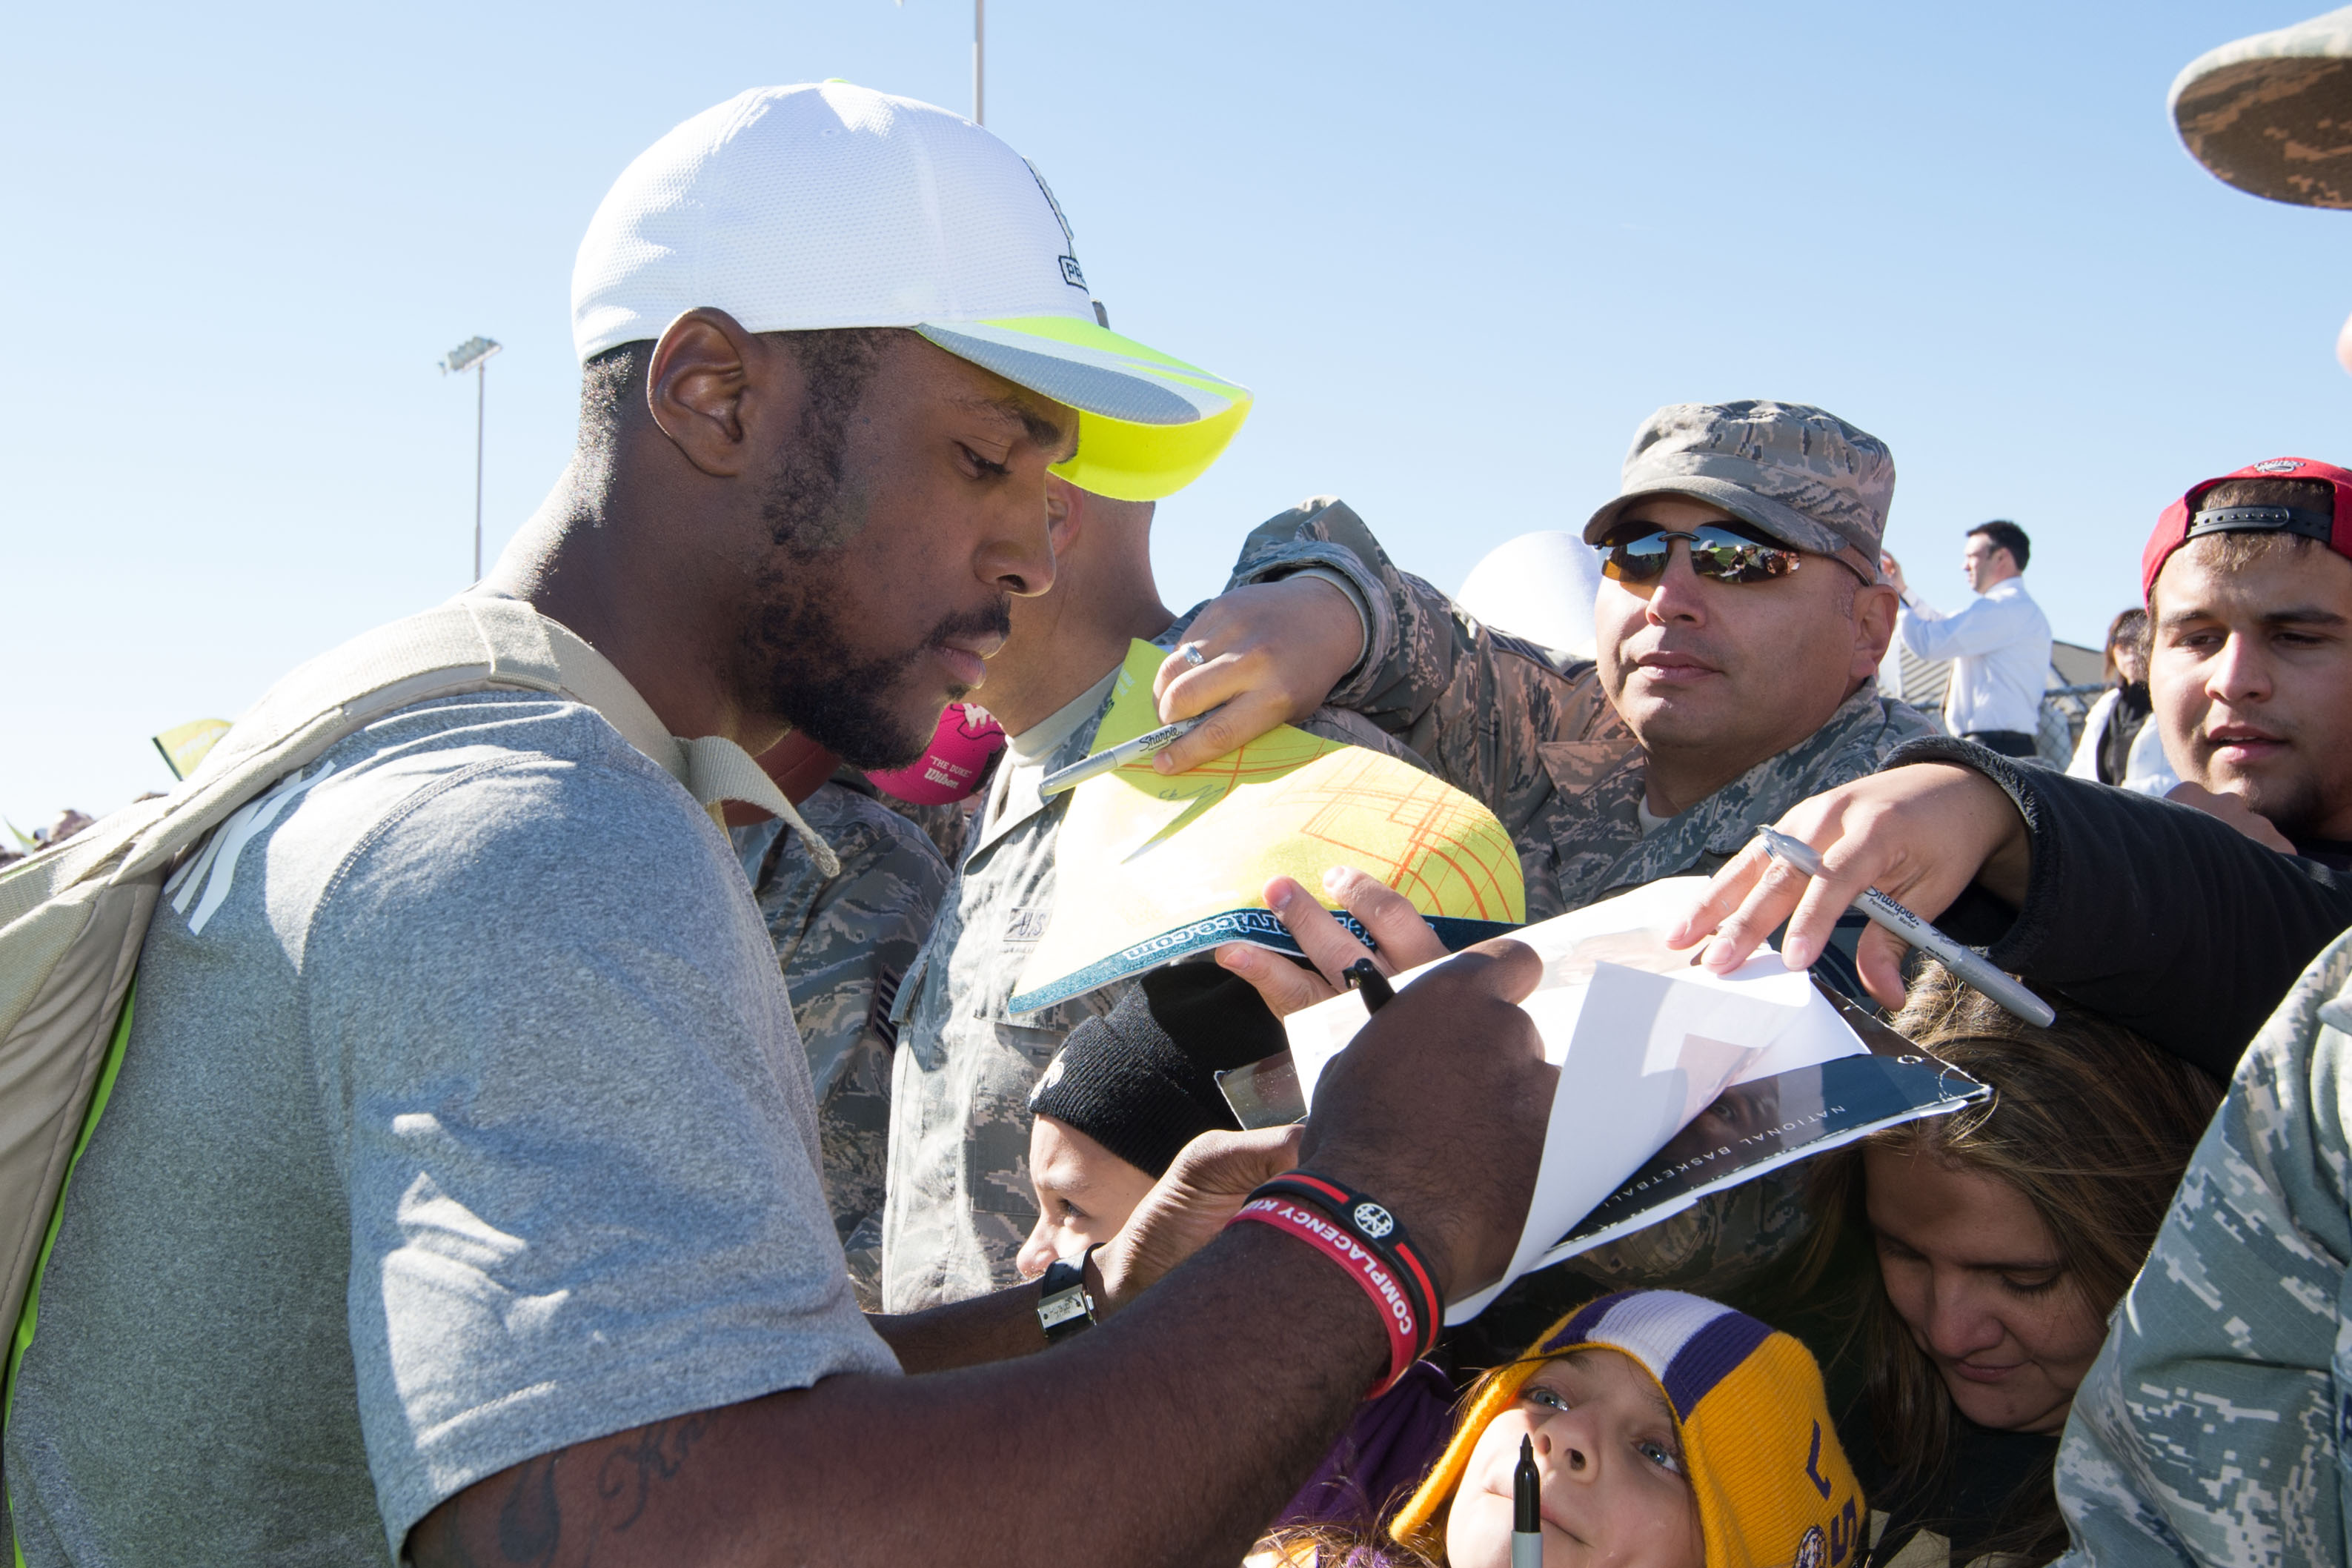 Patrick Peterson signs autographs for members of the military after a Pro Bowl practice in January.  (Photo: Kyle Terada, USA TODAY Sports)